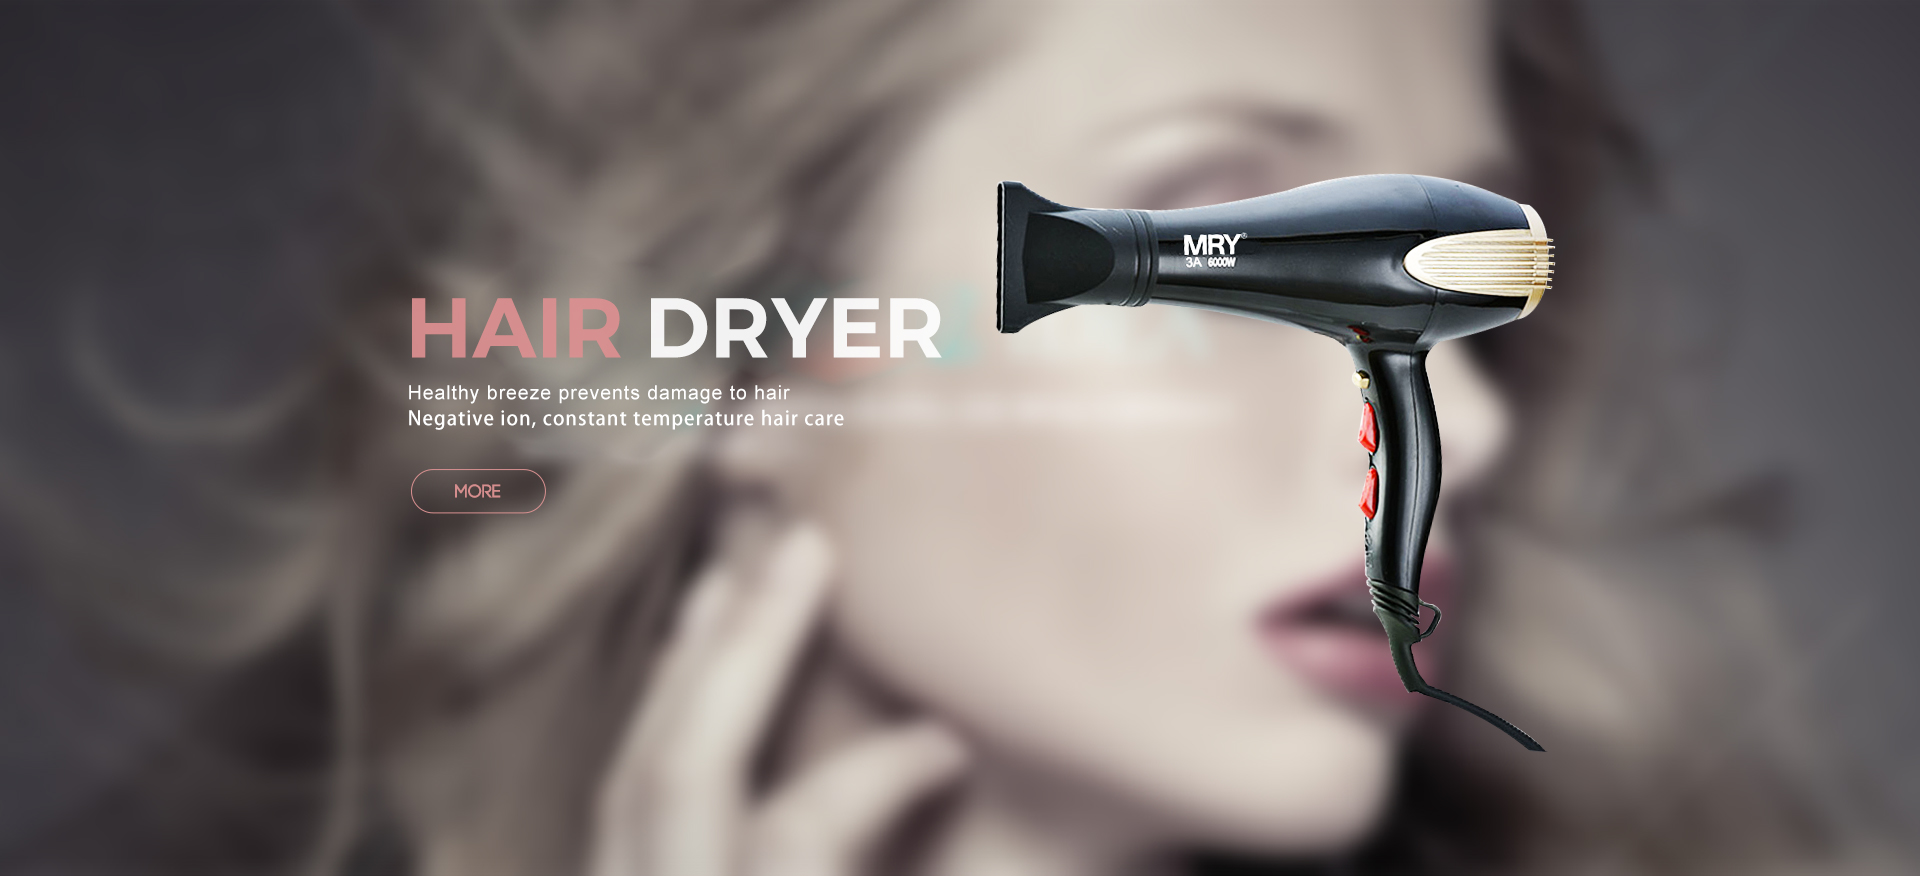 hair dryer.jpg